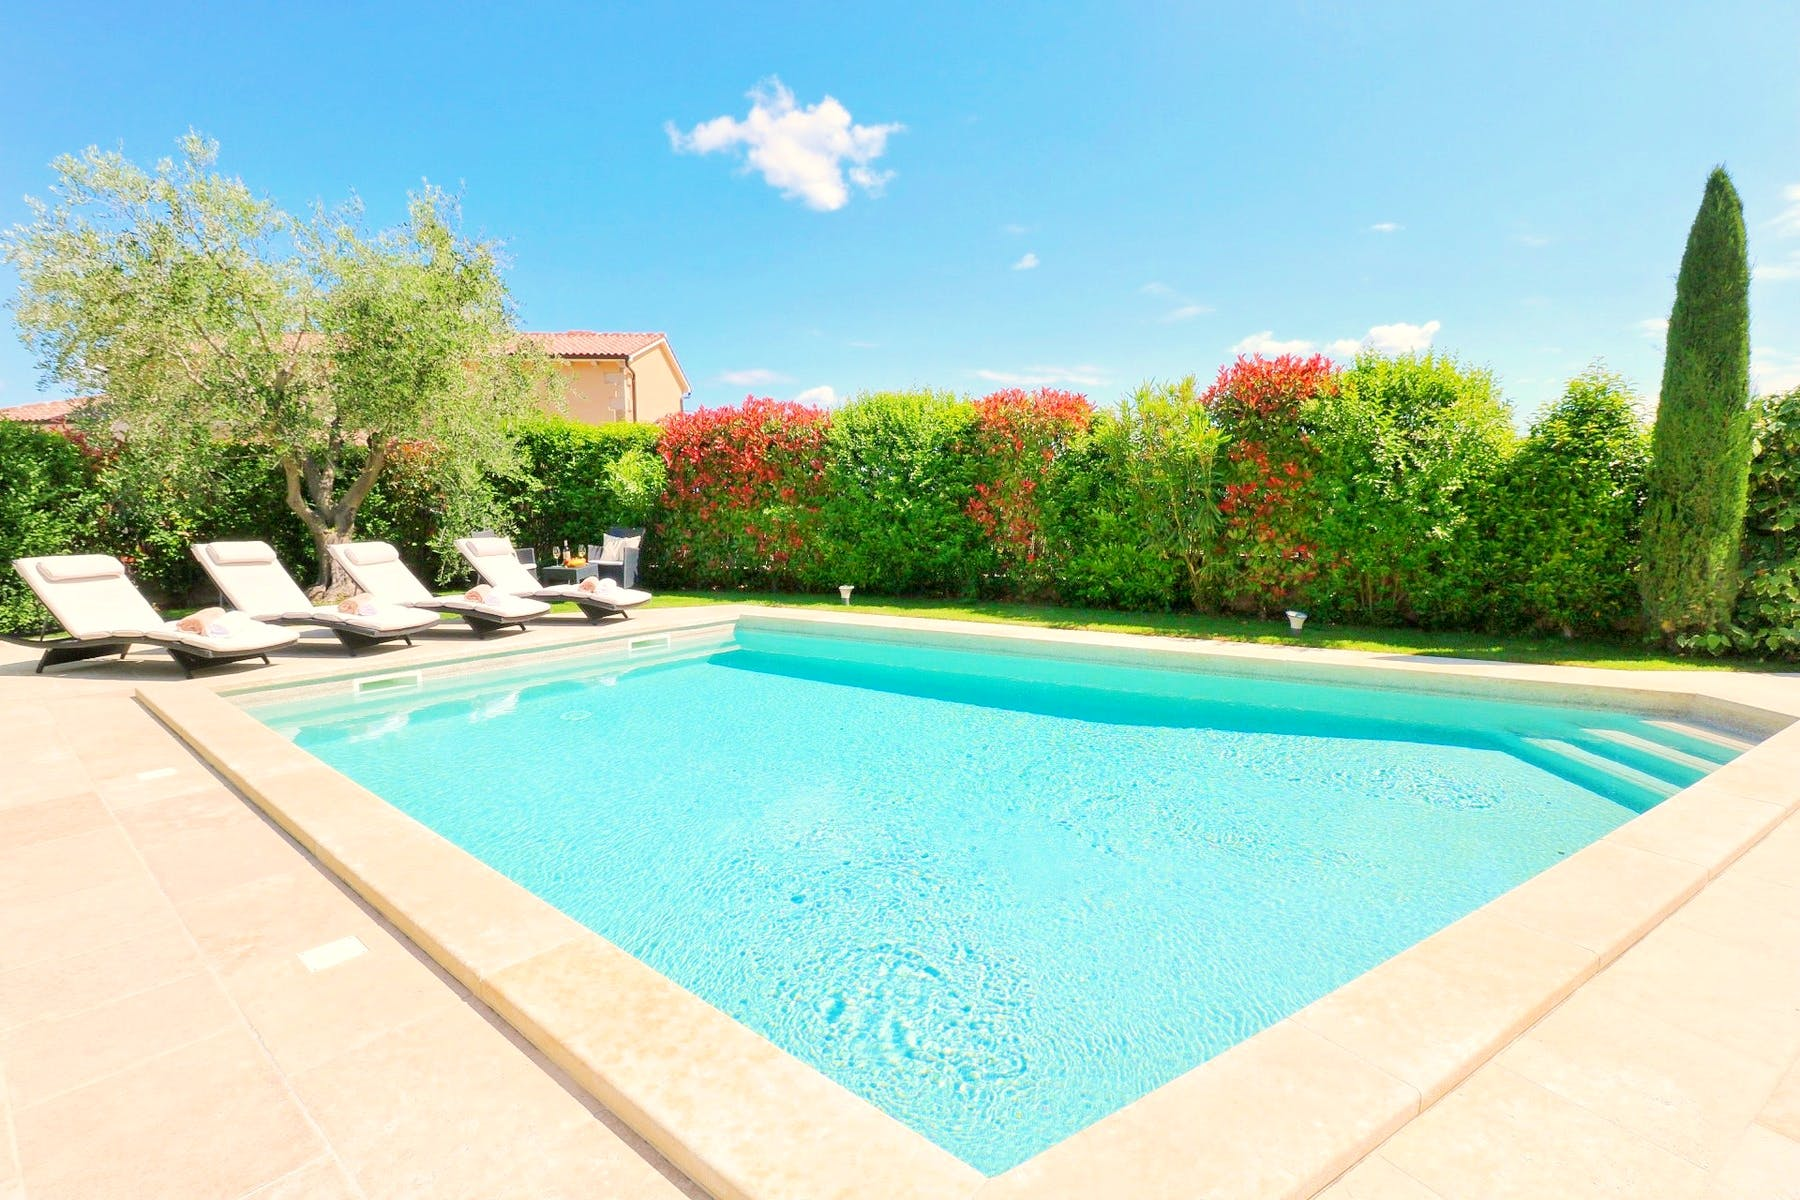 Swimming pool surrounded by authentic greenery